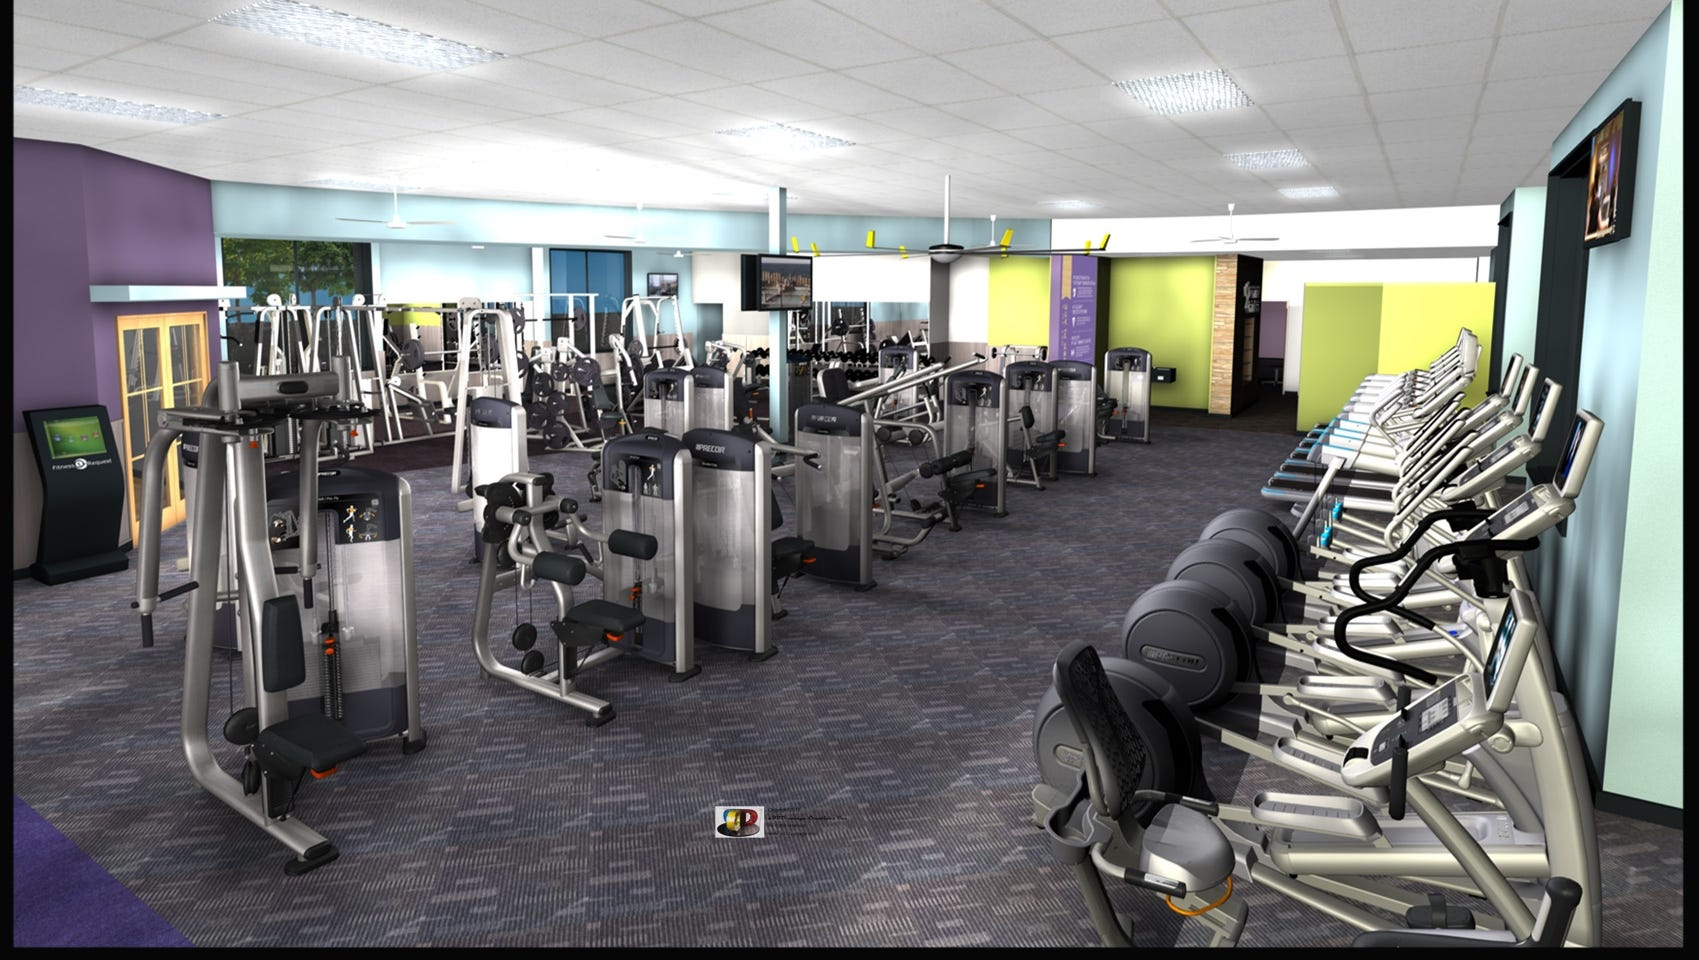 Two new gyms opening in downtown reno